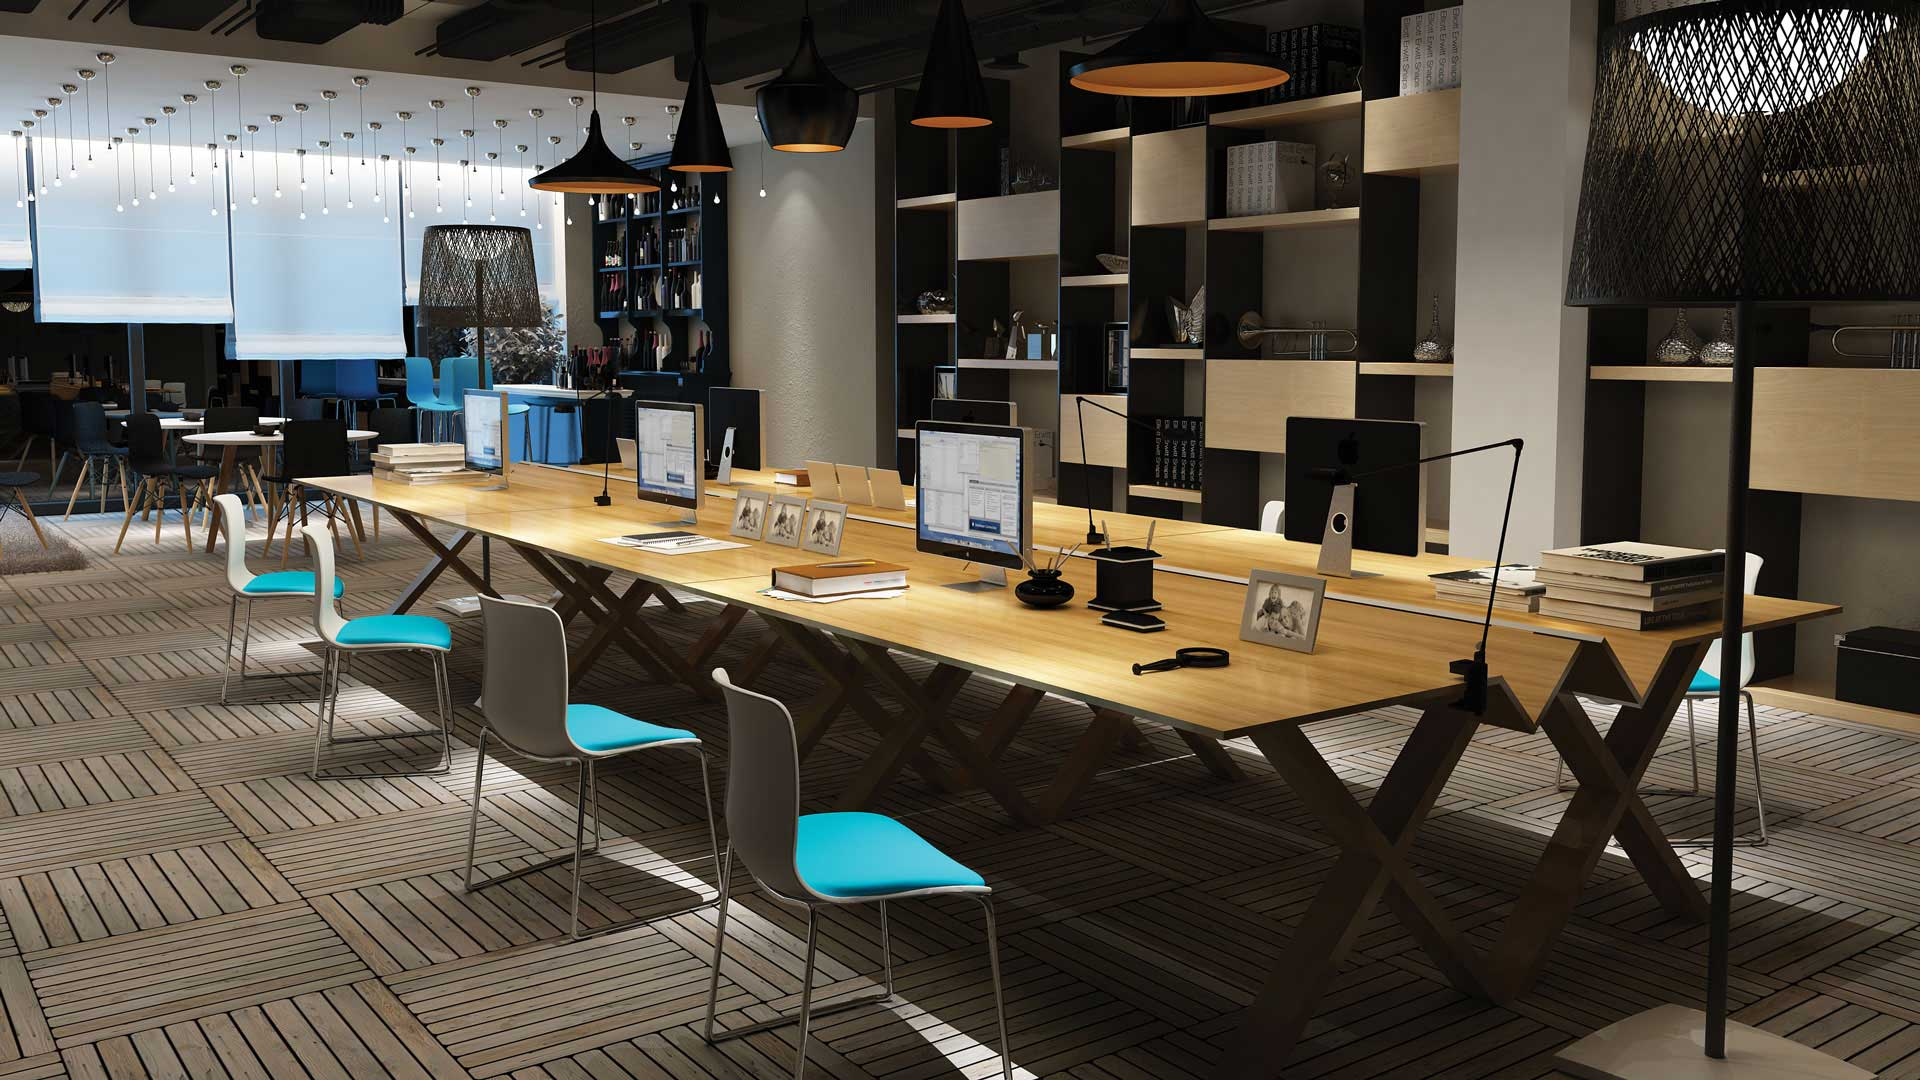 Free office layout & design service consultation to make the most of your space